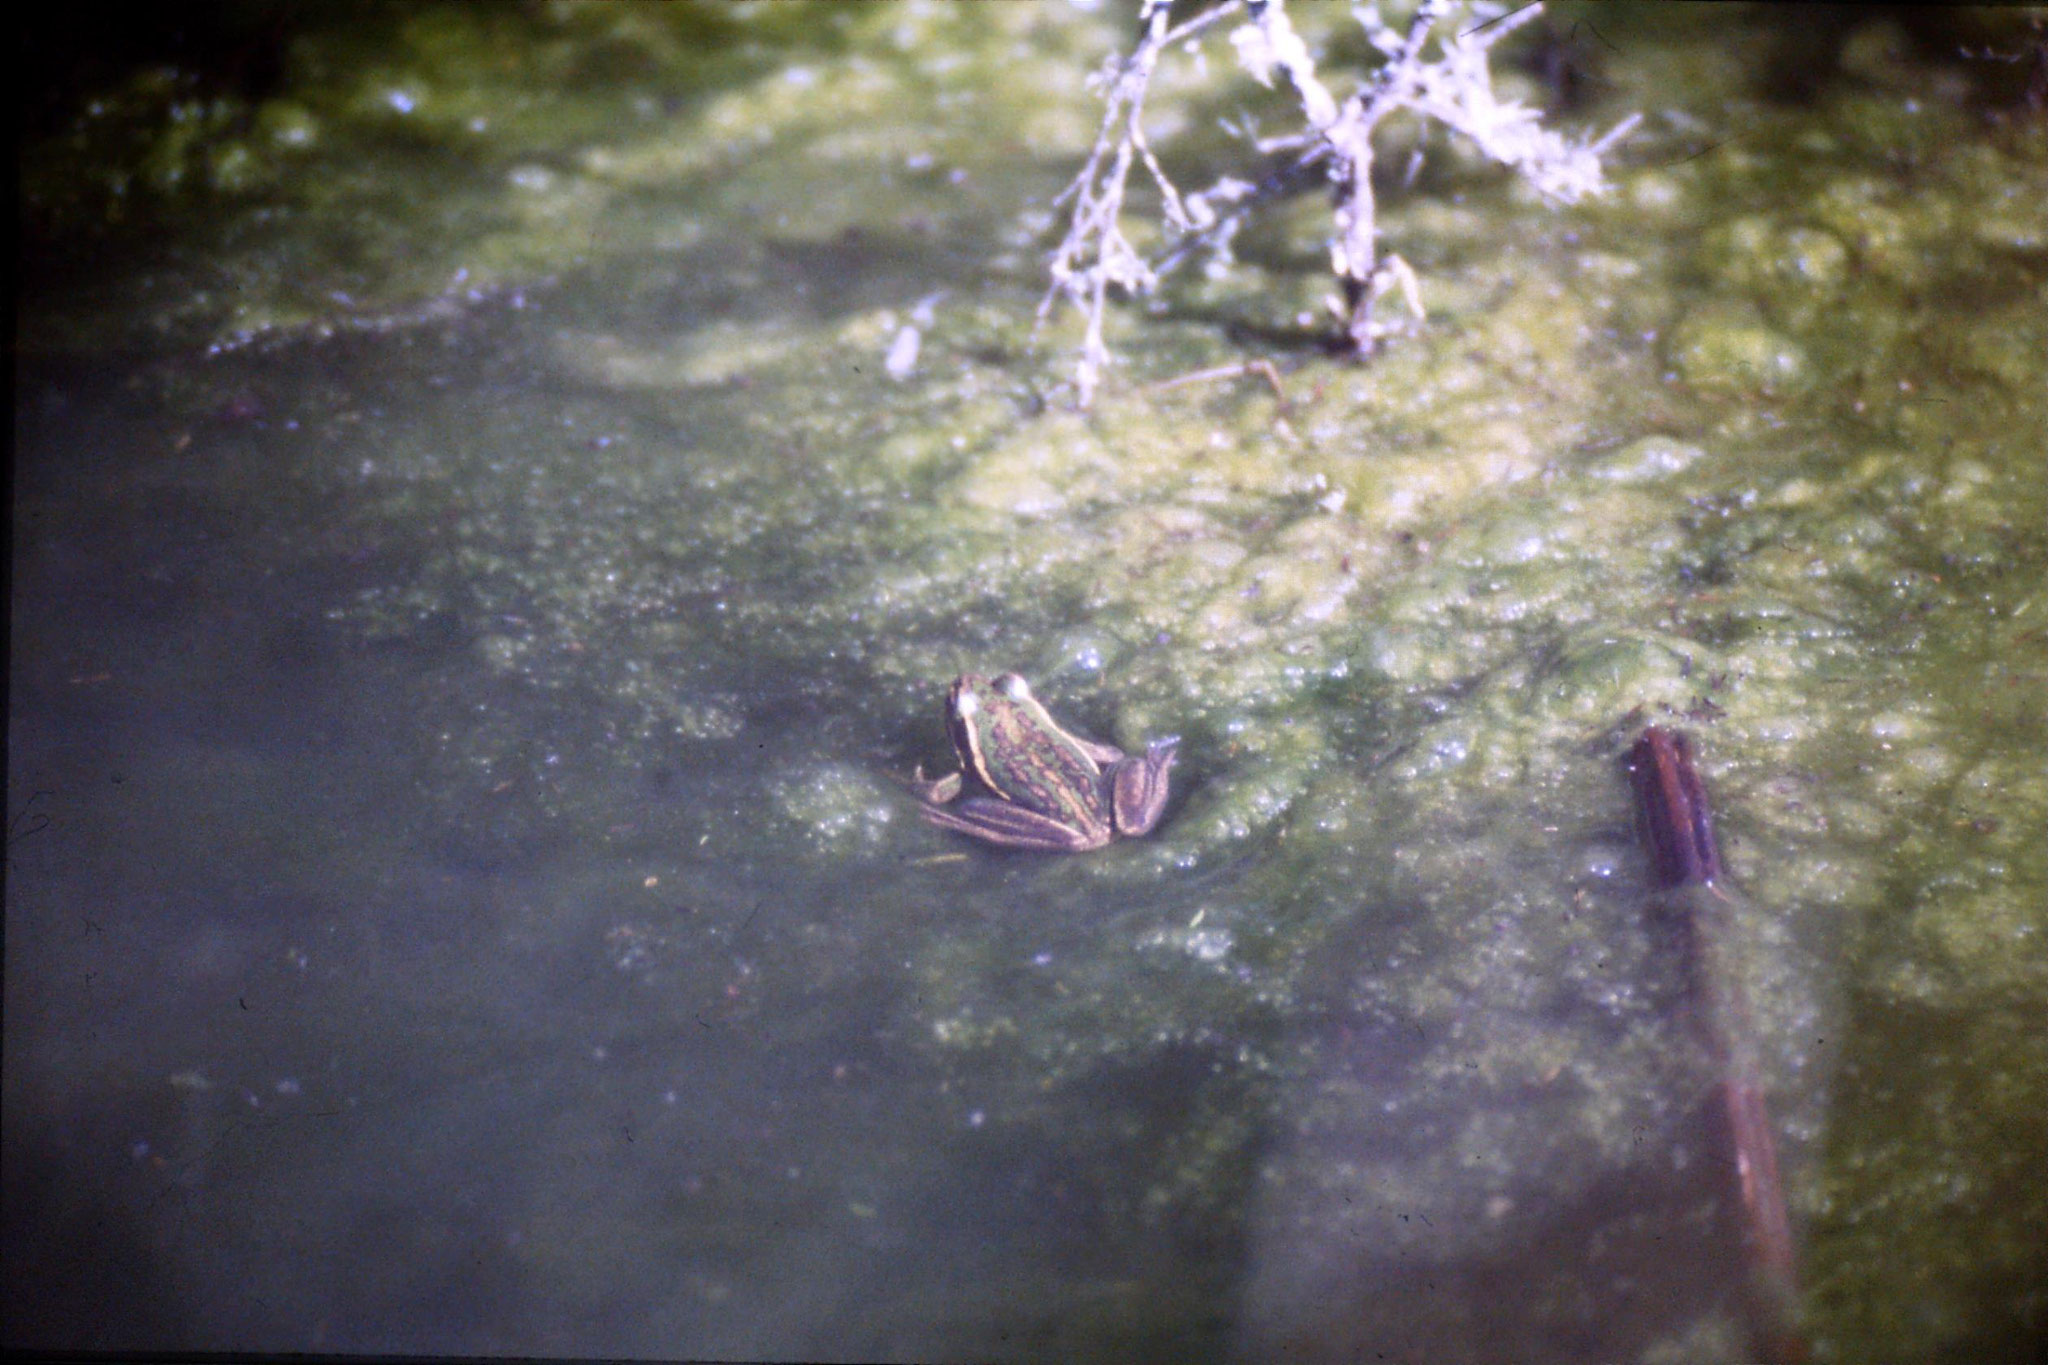 31/8/1990: 28: Waimangu frogs